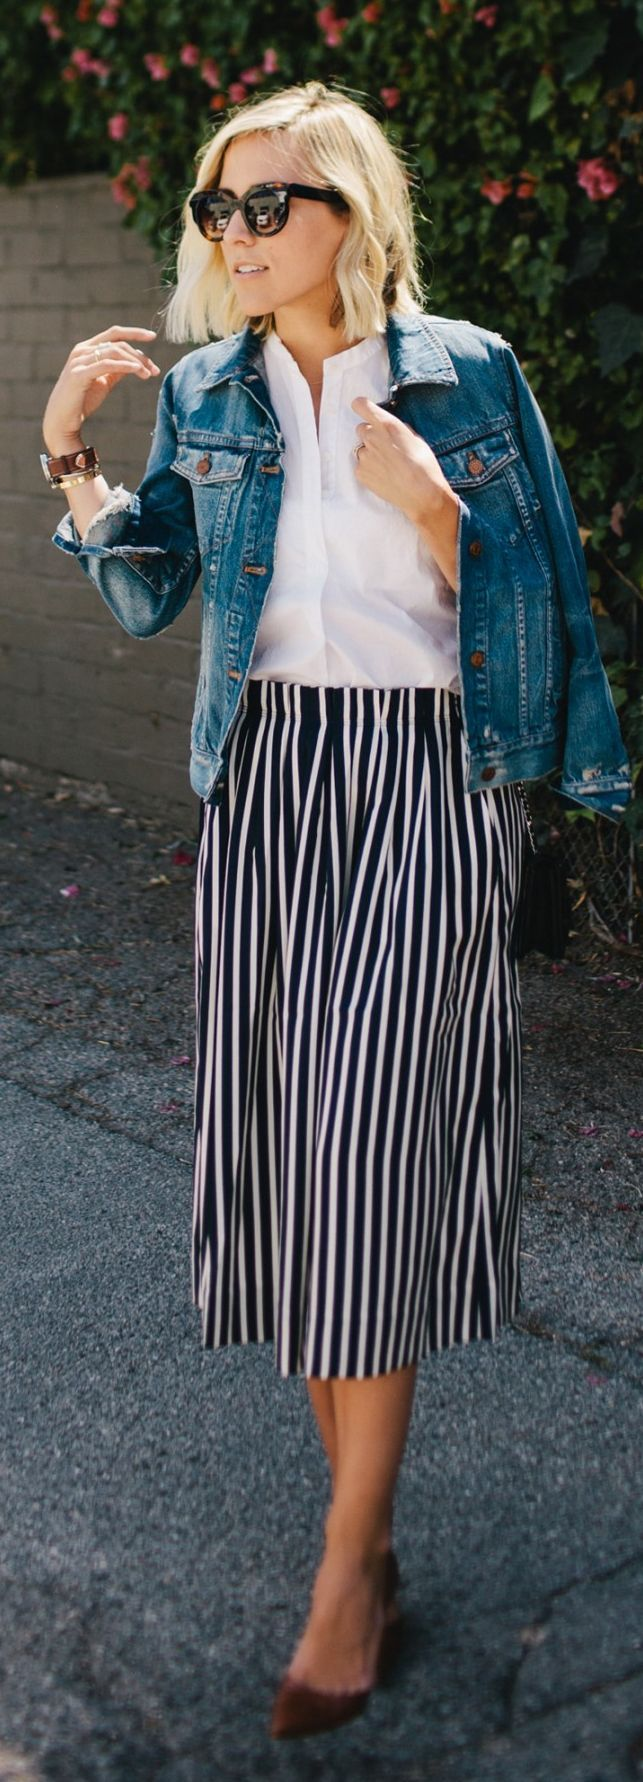 Midi Striped Skirt Outfit Idea by Damsel In Dior